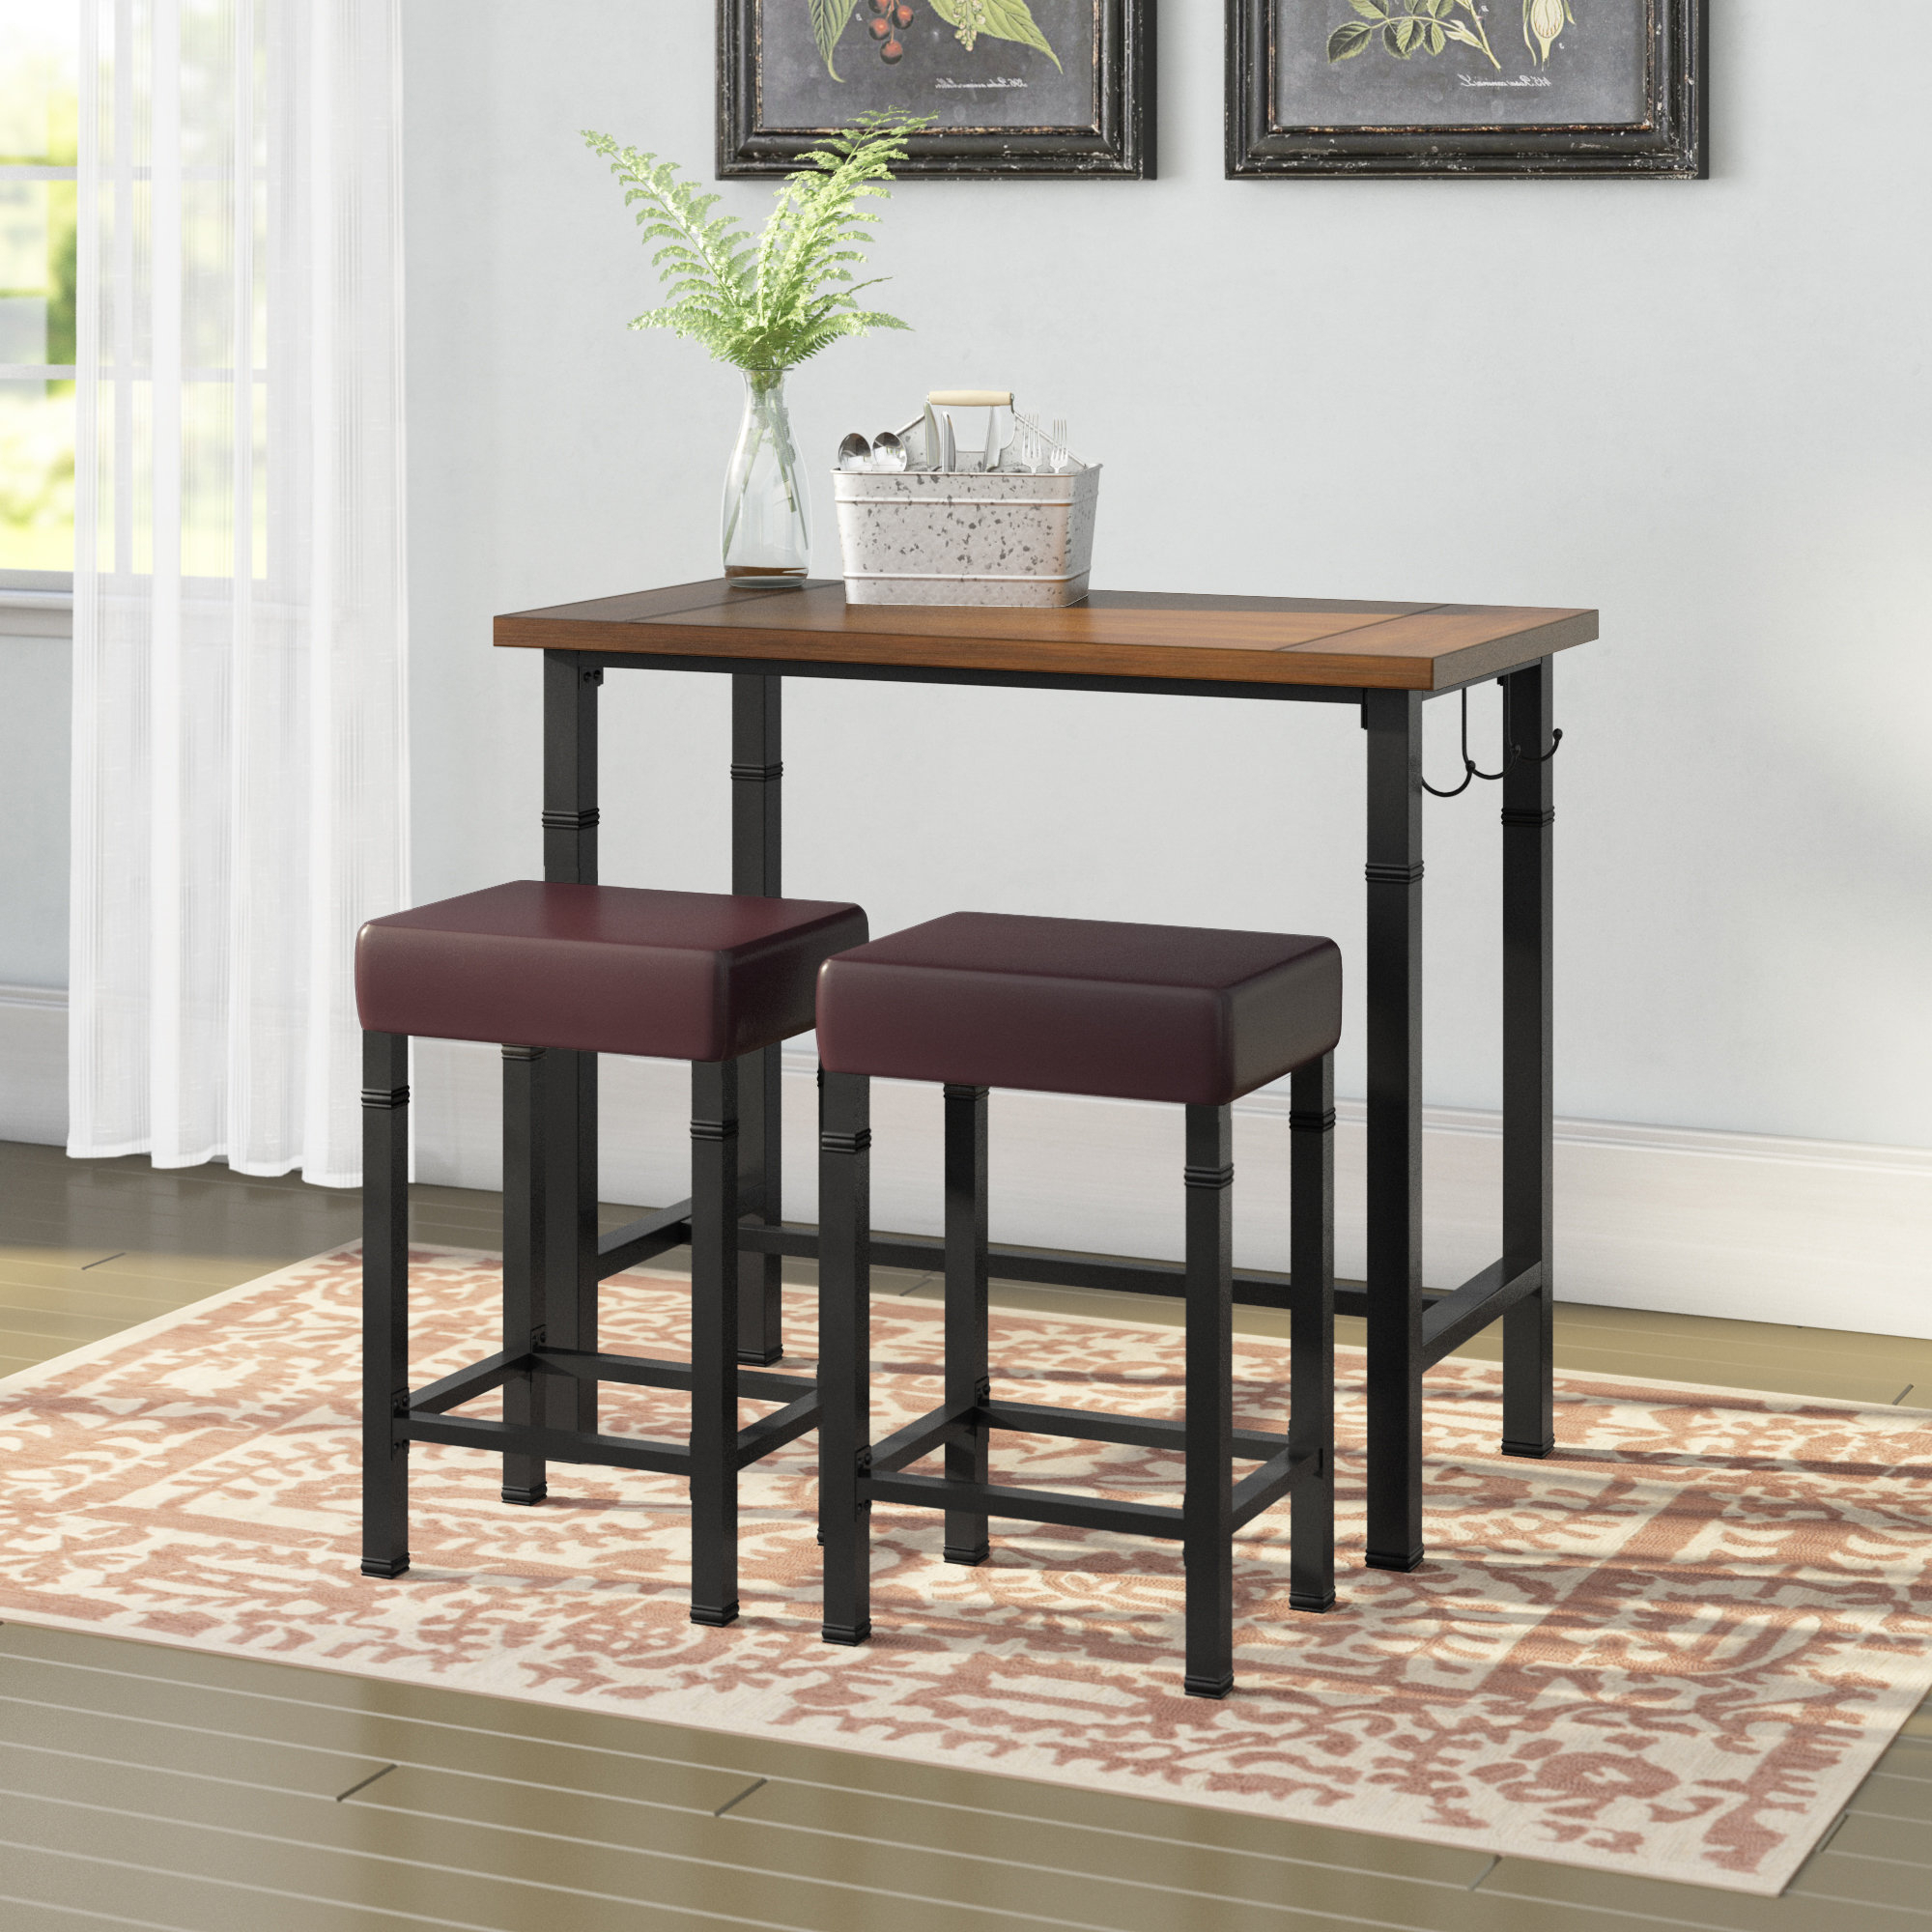 Well Liked Sevigny 3 Piece Pub Table Set Within Tenney 3 Piece Counter Height Dining Sets (View 13 of 20)